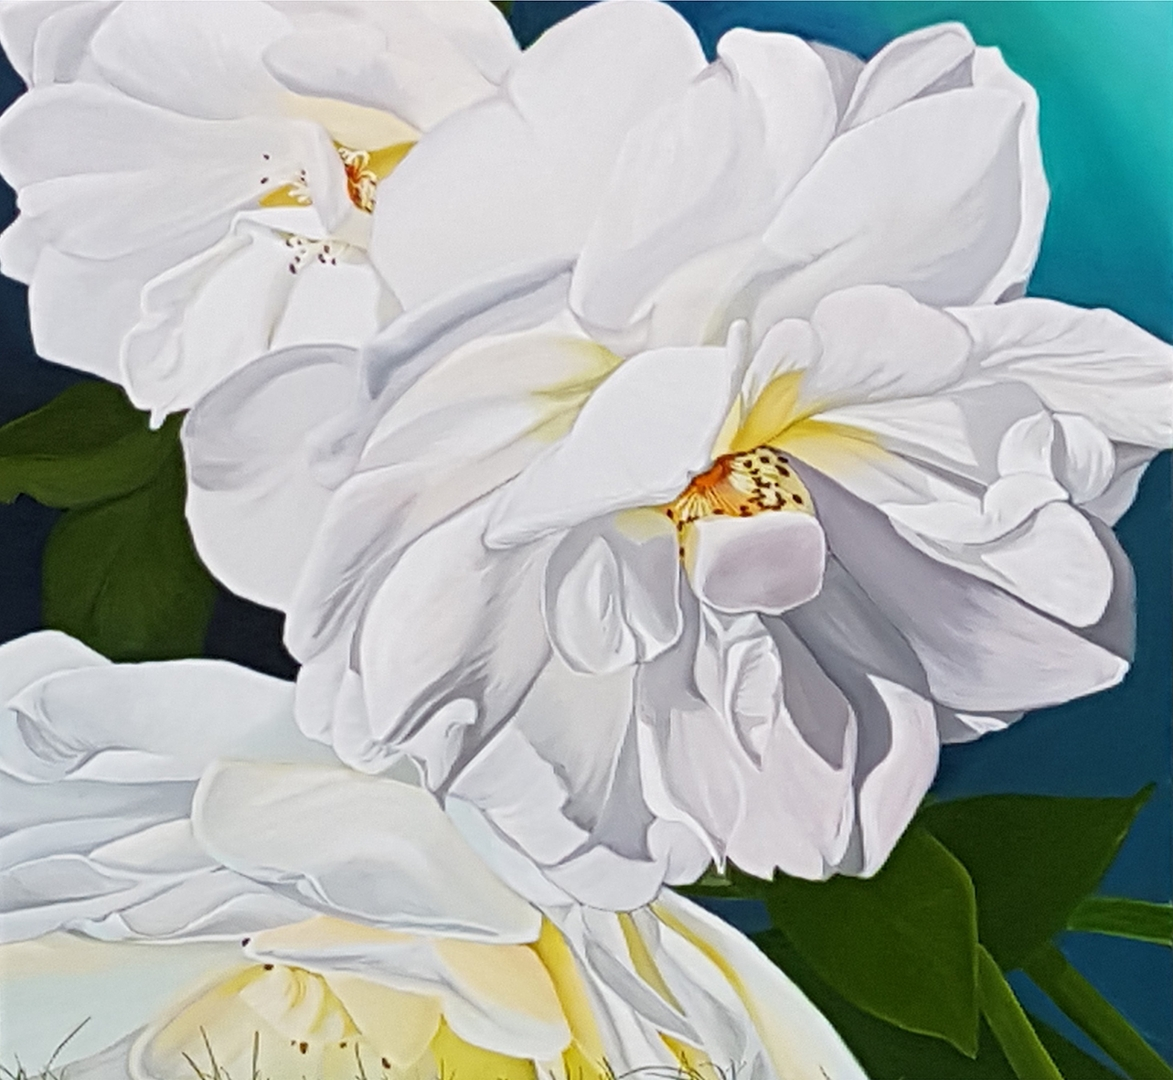 Billie Peka, 'White Roses – Flourish', 2018, acrylic on canvas image